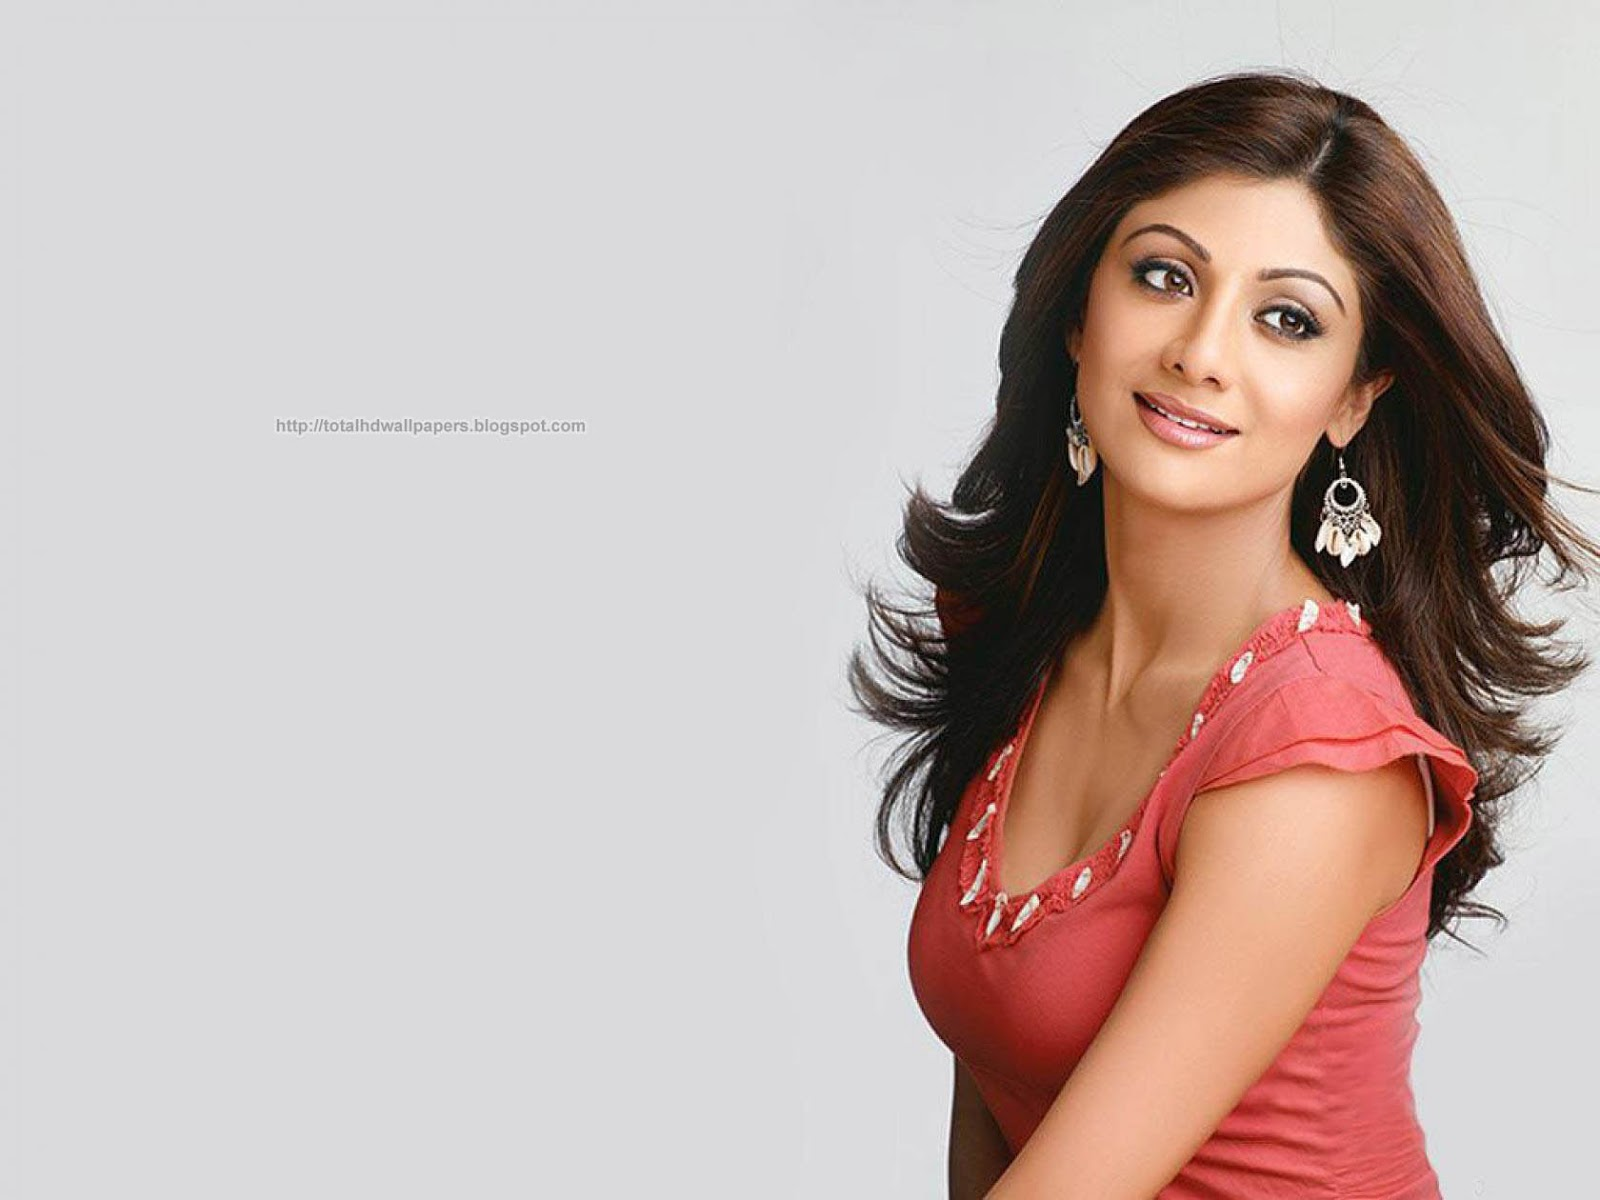 bollywood actress wallpapers - photo #45